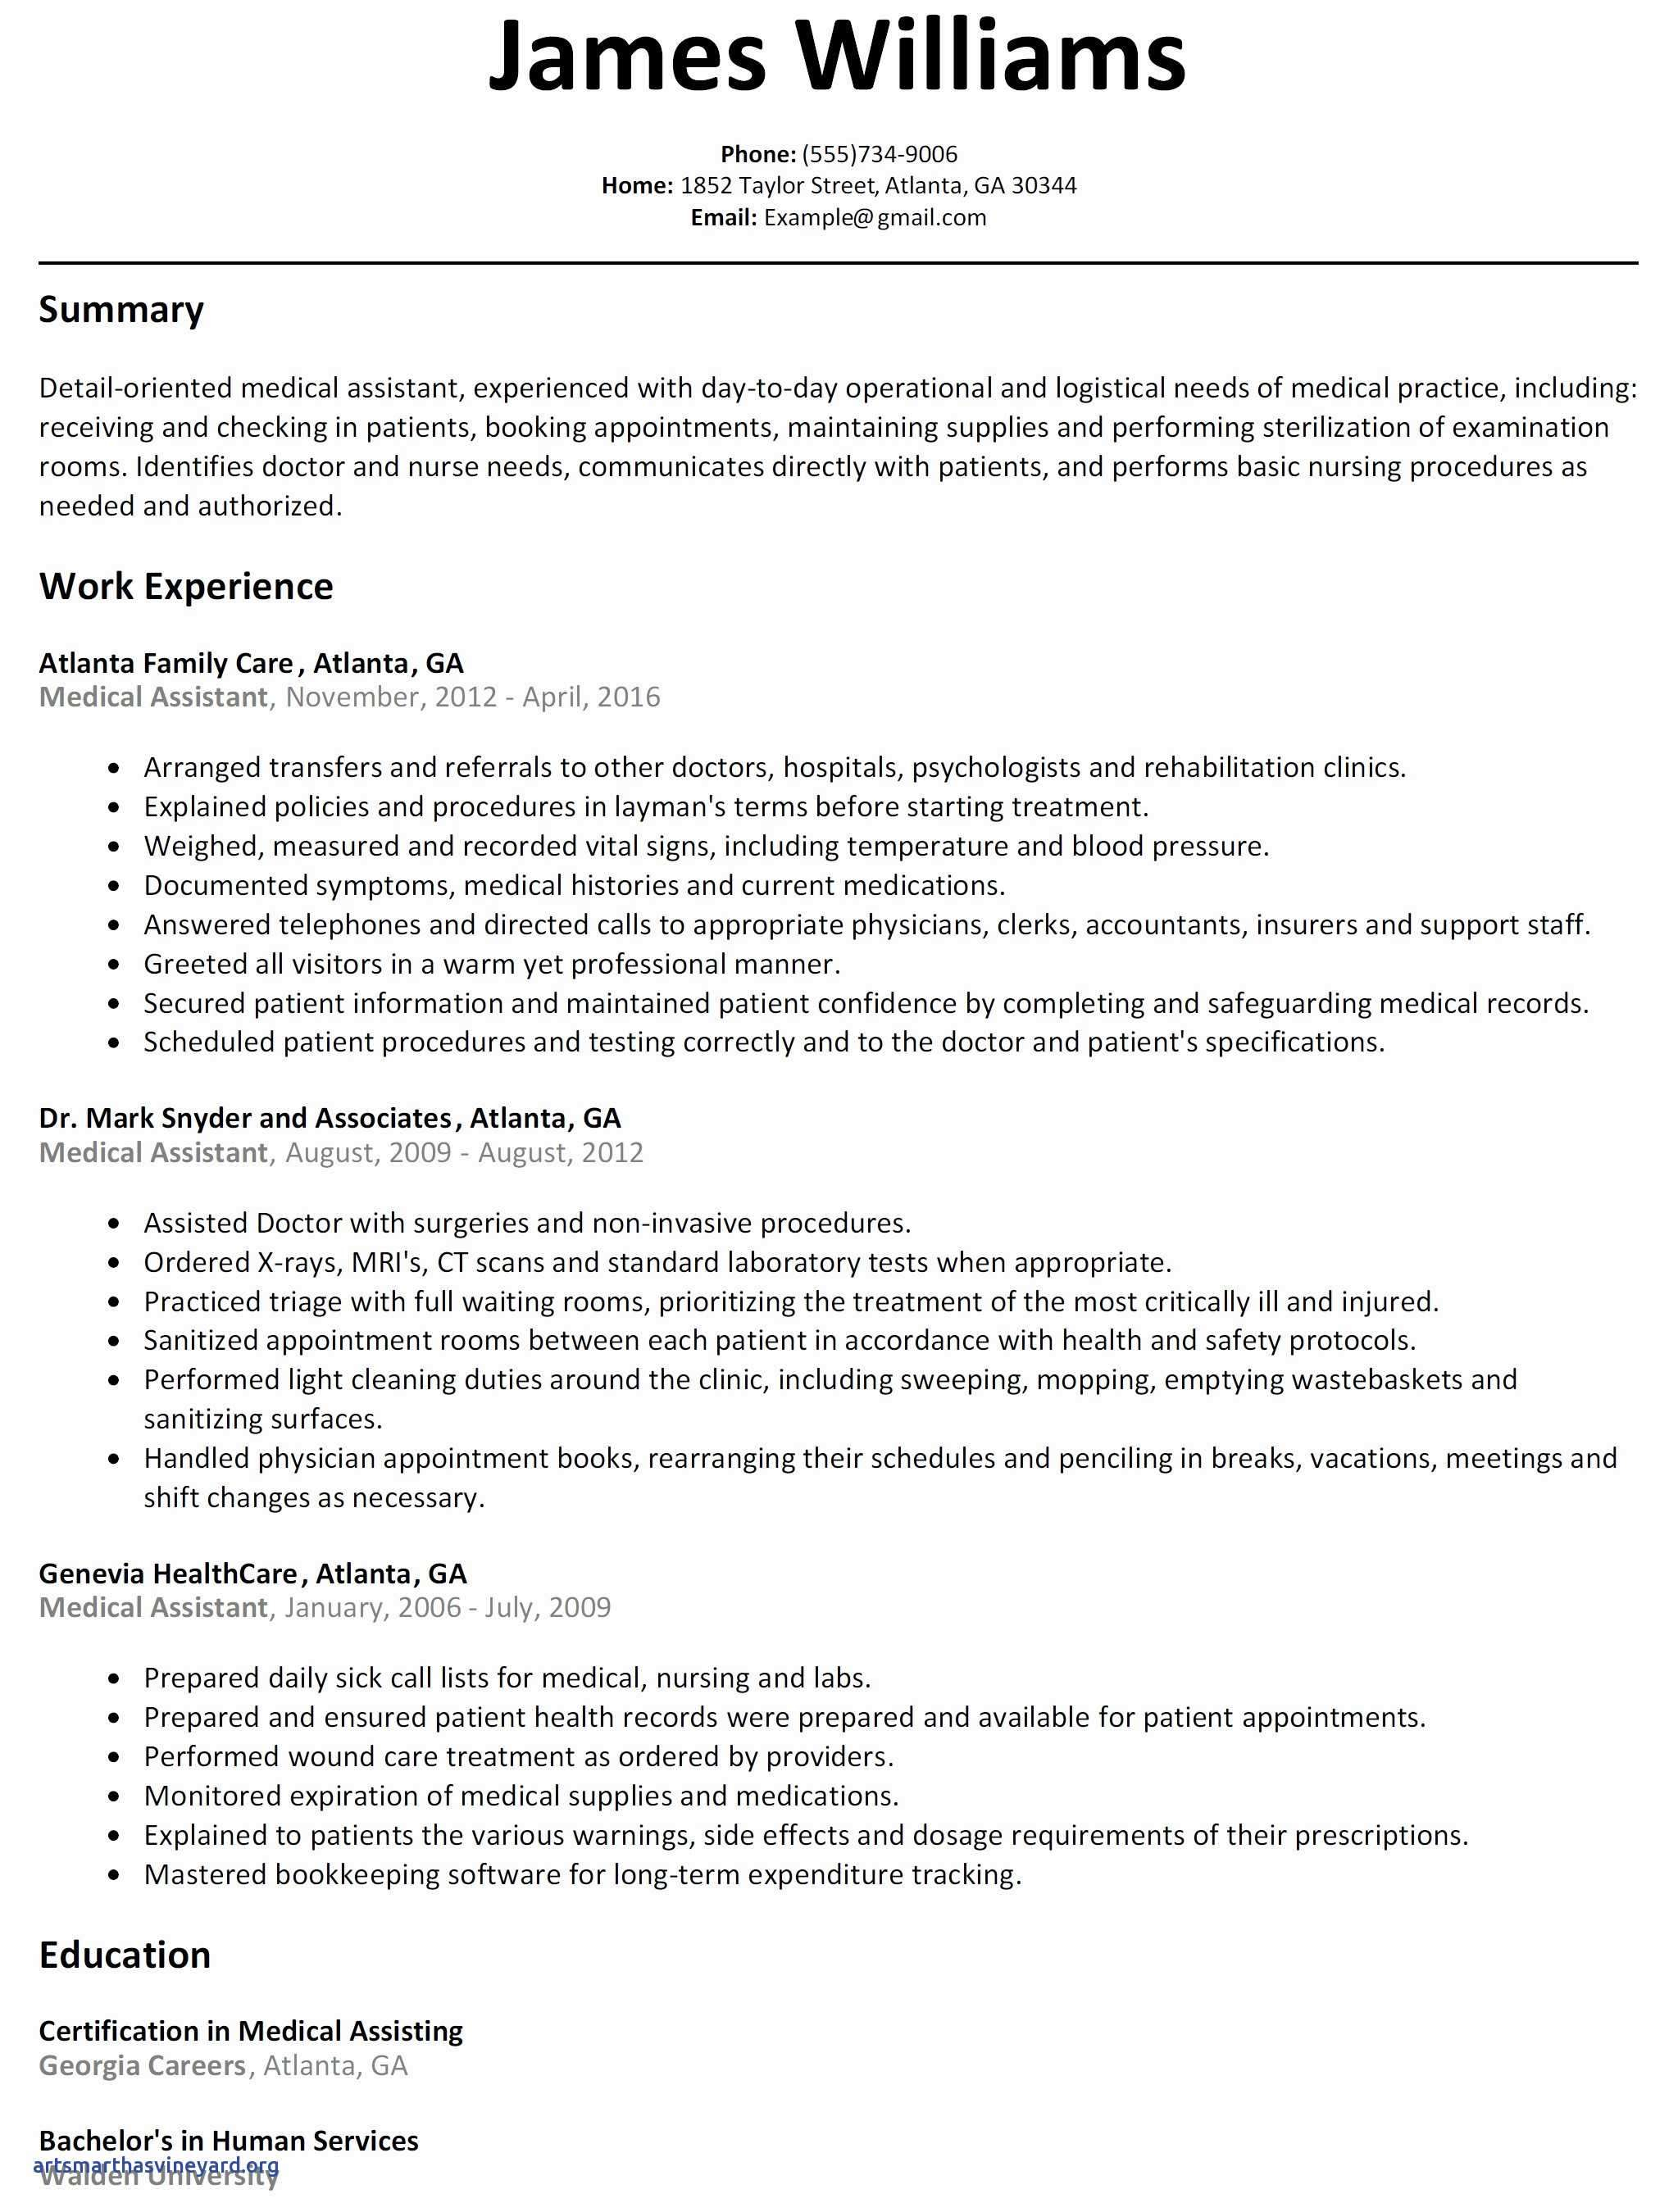 store manager resume template Collection-Unique Retail Resume Sample Awesome Resume Template Free Word New Od 8-j